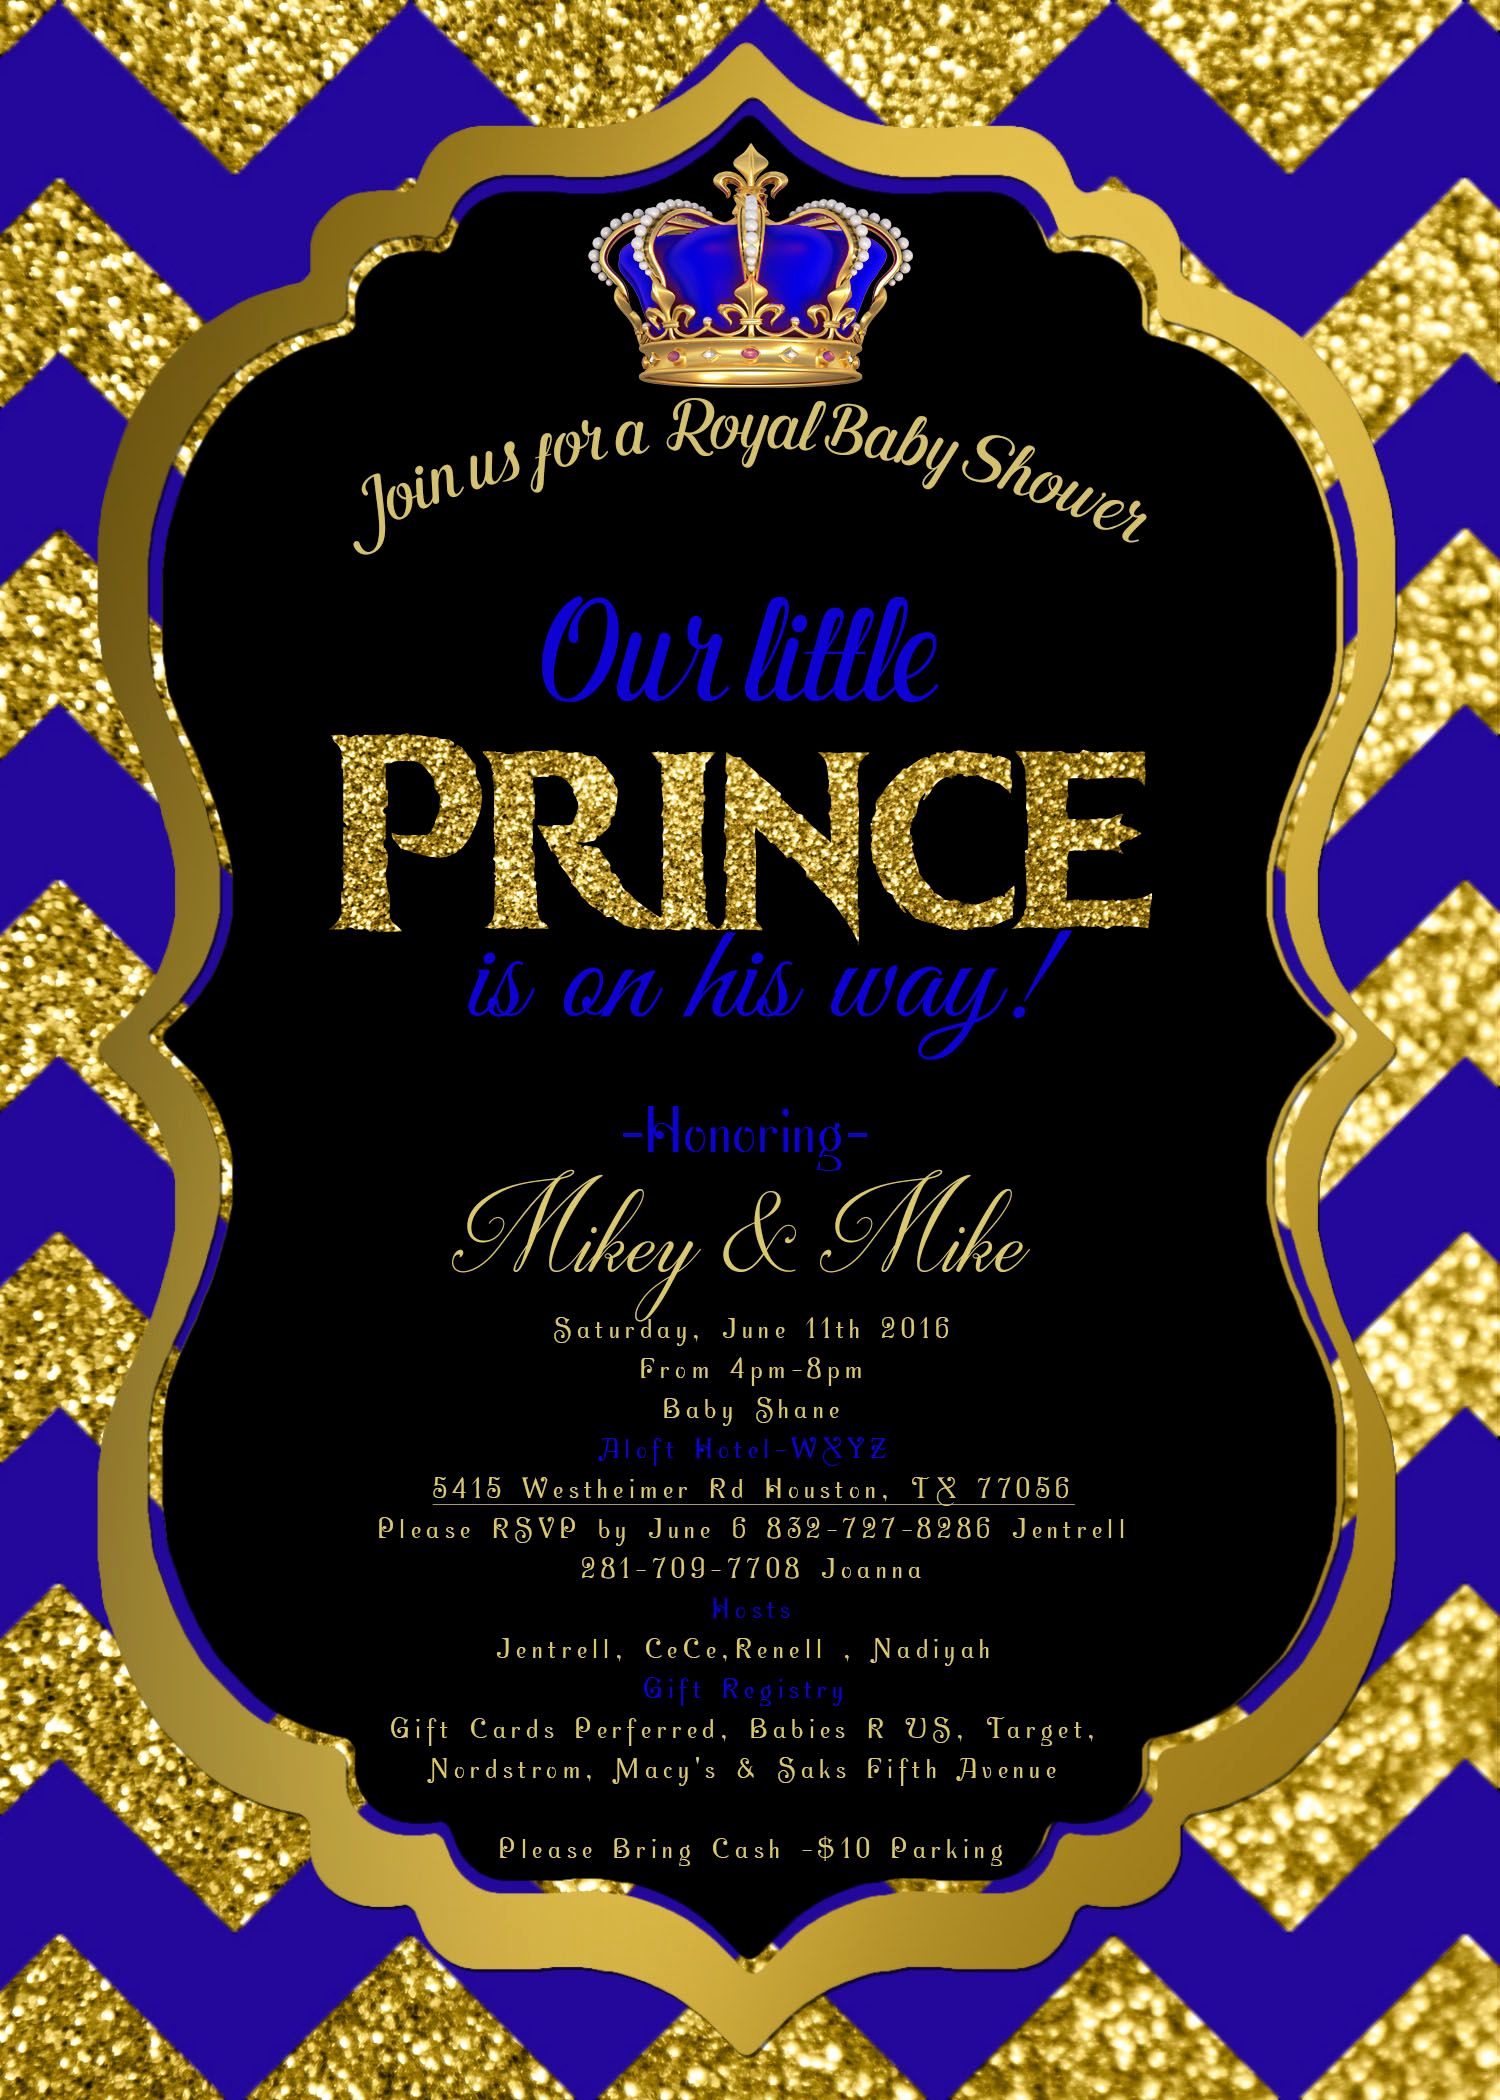 Royal Baby Shower Invitation Templates Lovely Royal Baby Shower Invitation Royal Prince Invite